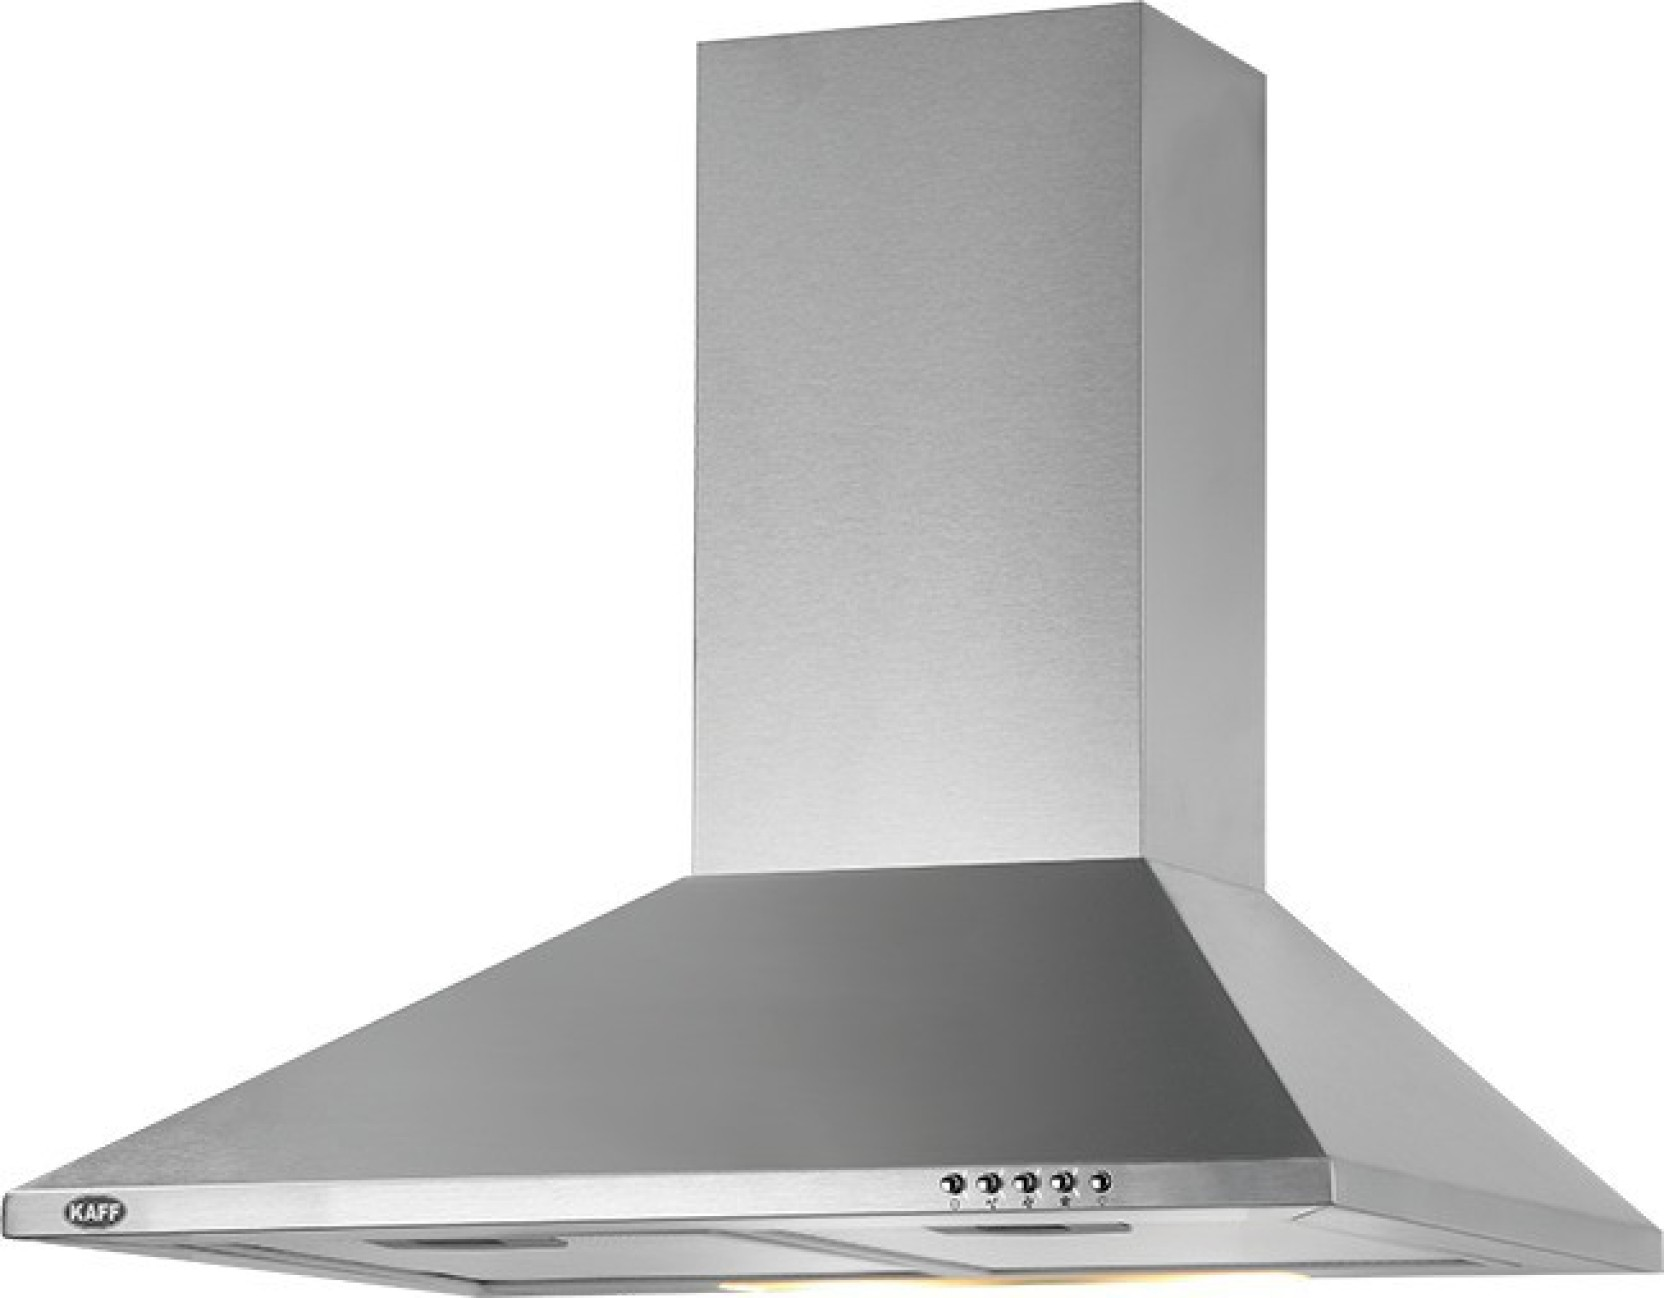 Kaff BASE LX 60 Wall Mounted Chimney Price in India - Buy Kaff BASE ...